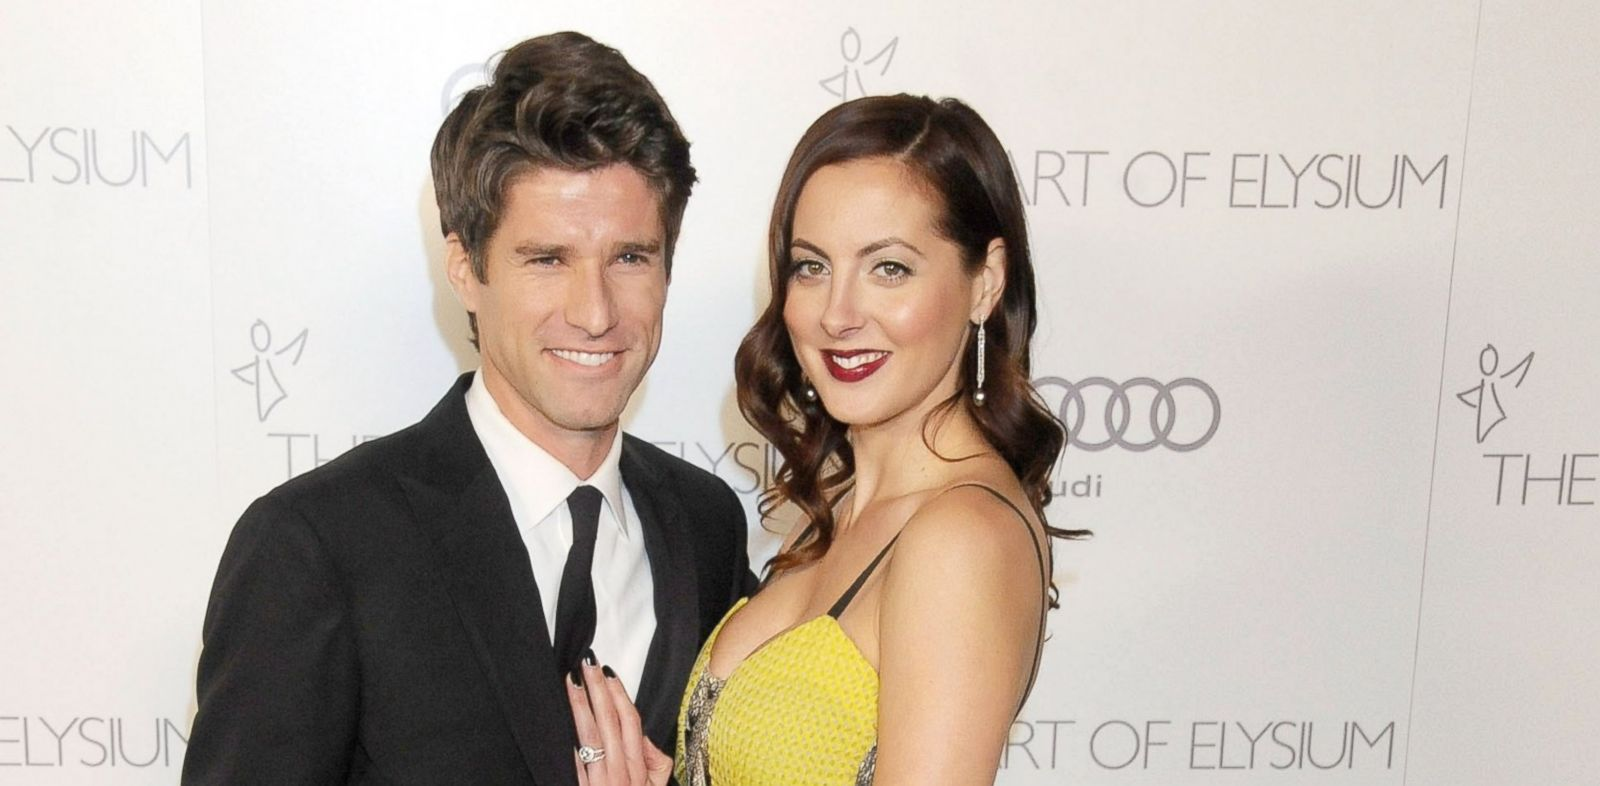 PHOTO: In this file photo, Eva Amurri Martino, right, and husband Kyle Martino, left, are pictured on Jan. 12, 2013 in Los Angeles, Calif.